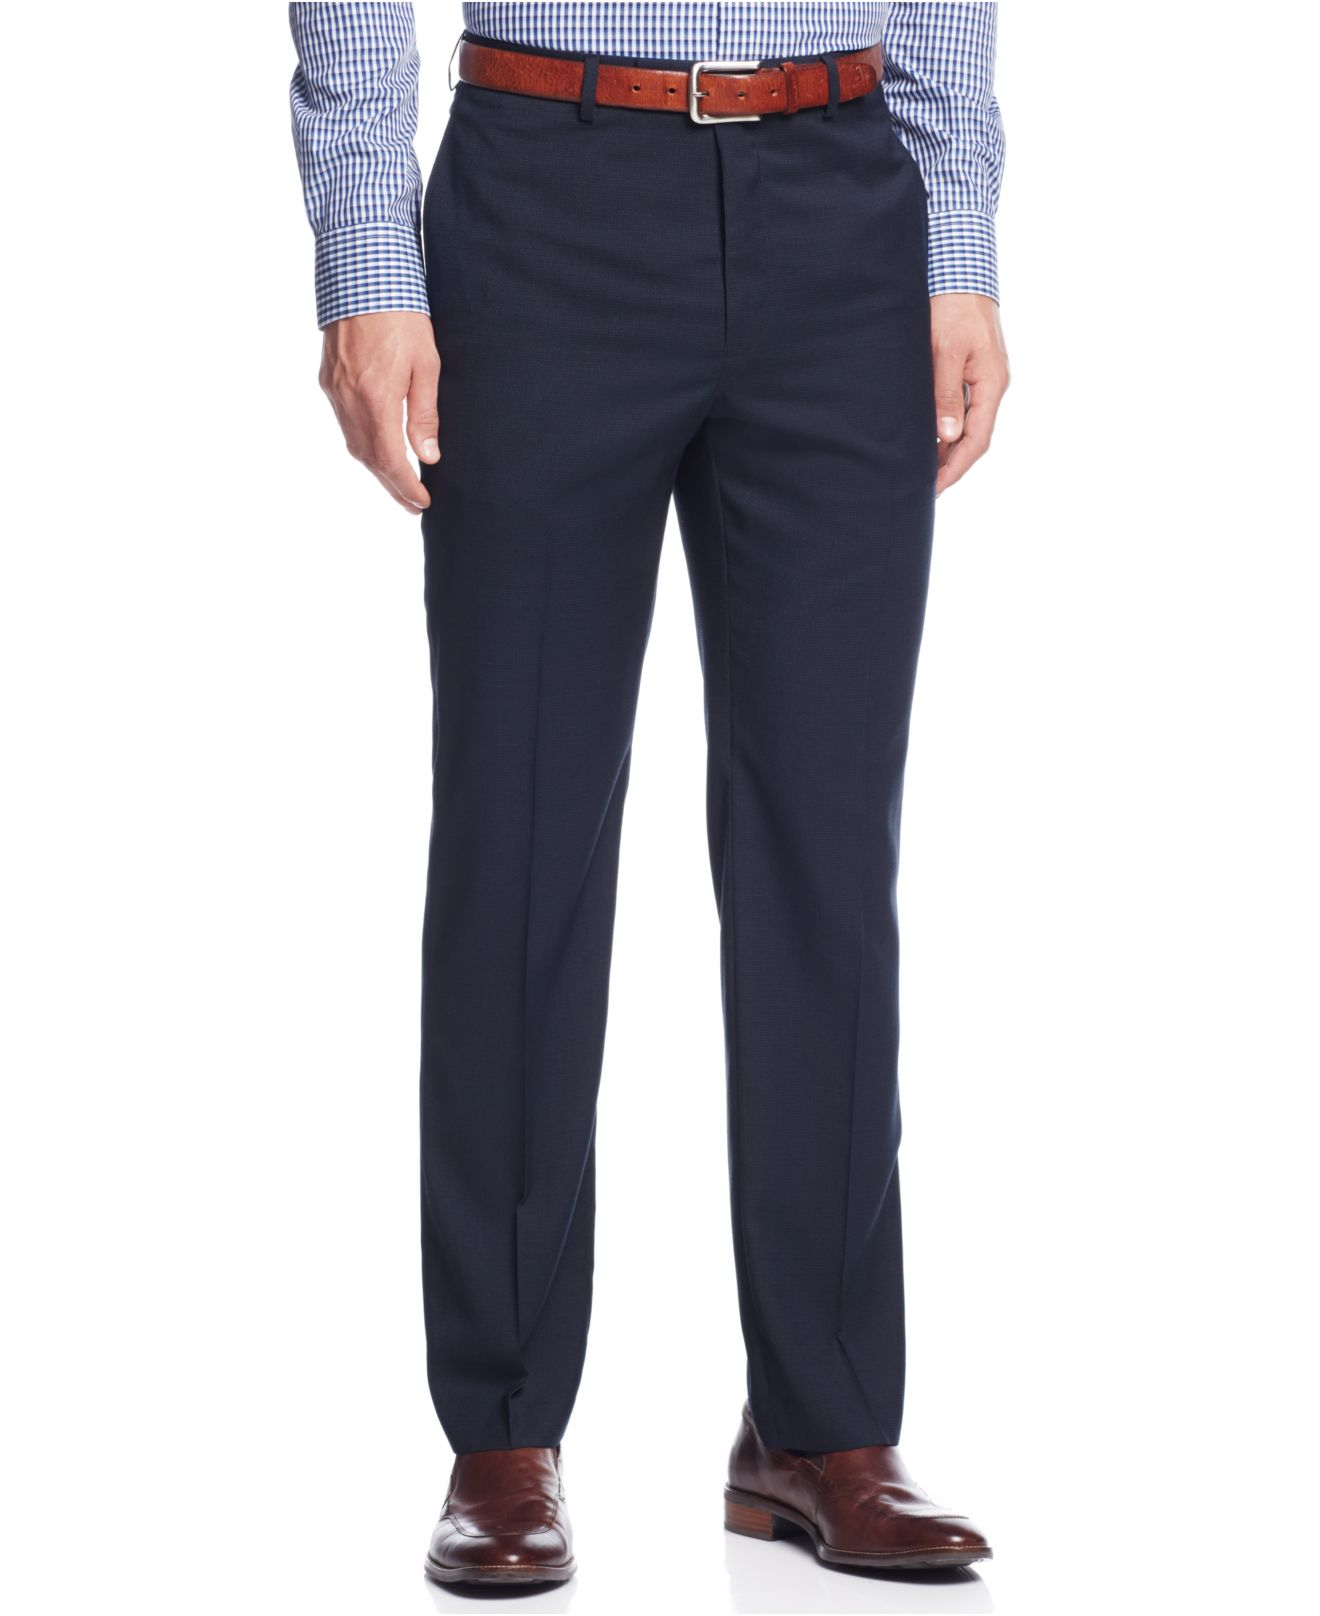 Product# KA Tapered Leg Lower rise Pants & Get skinny Two Button Three Piece Notch Lapel Euro Slim narrow Style Fit Suit Tapered pants Navy $ Product# KA Tapered Leg Lower rise Pants & Get skinny Two Button Three Piece Notch Lapel Euro Slim narrow Style Fit Suit Tapered pants .